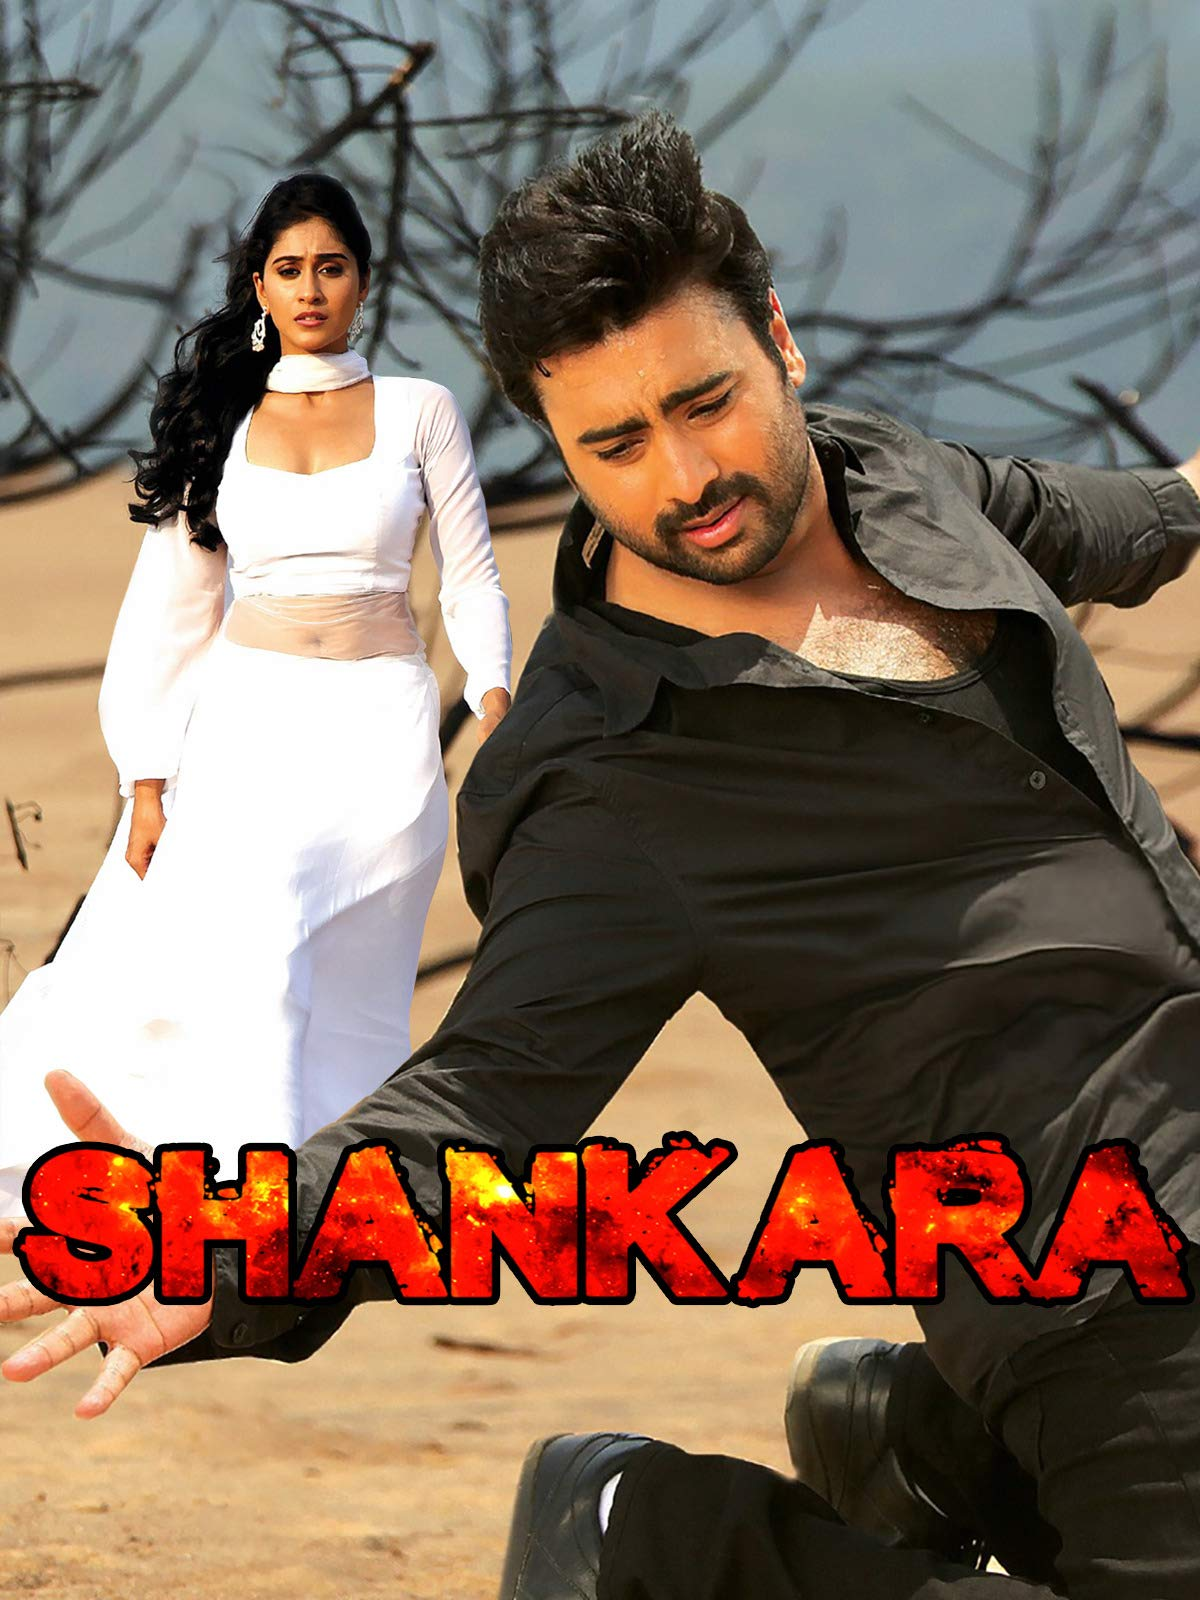 Shankara 2020 Hindi Dubbed 720p HDRip 800MB Download